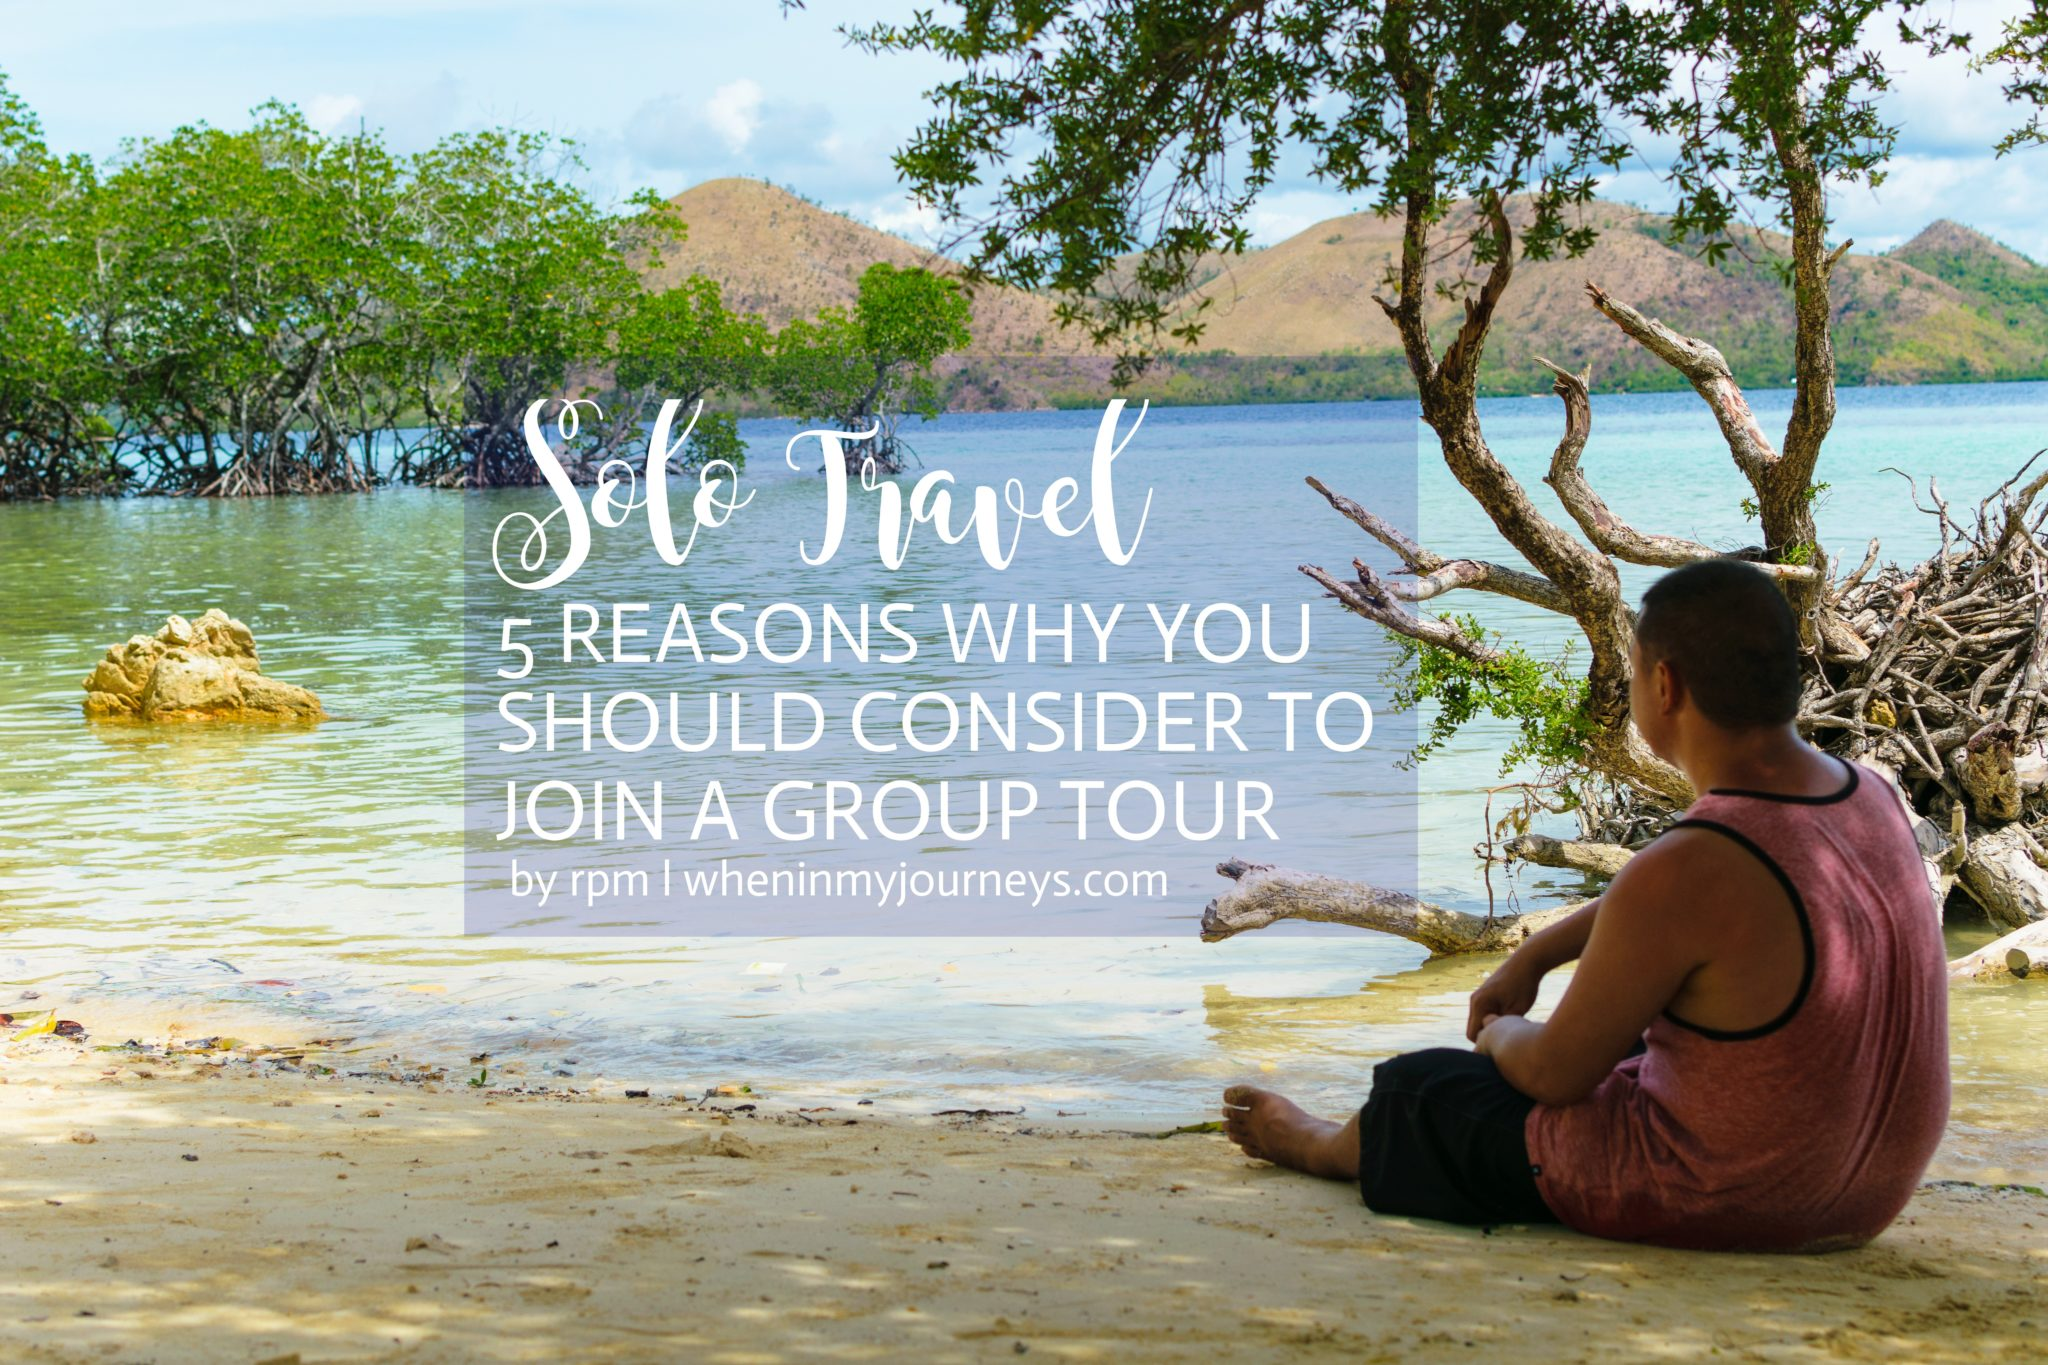 Solo Travel: 5 Reasons Why You Should Consider To Join a